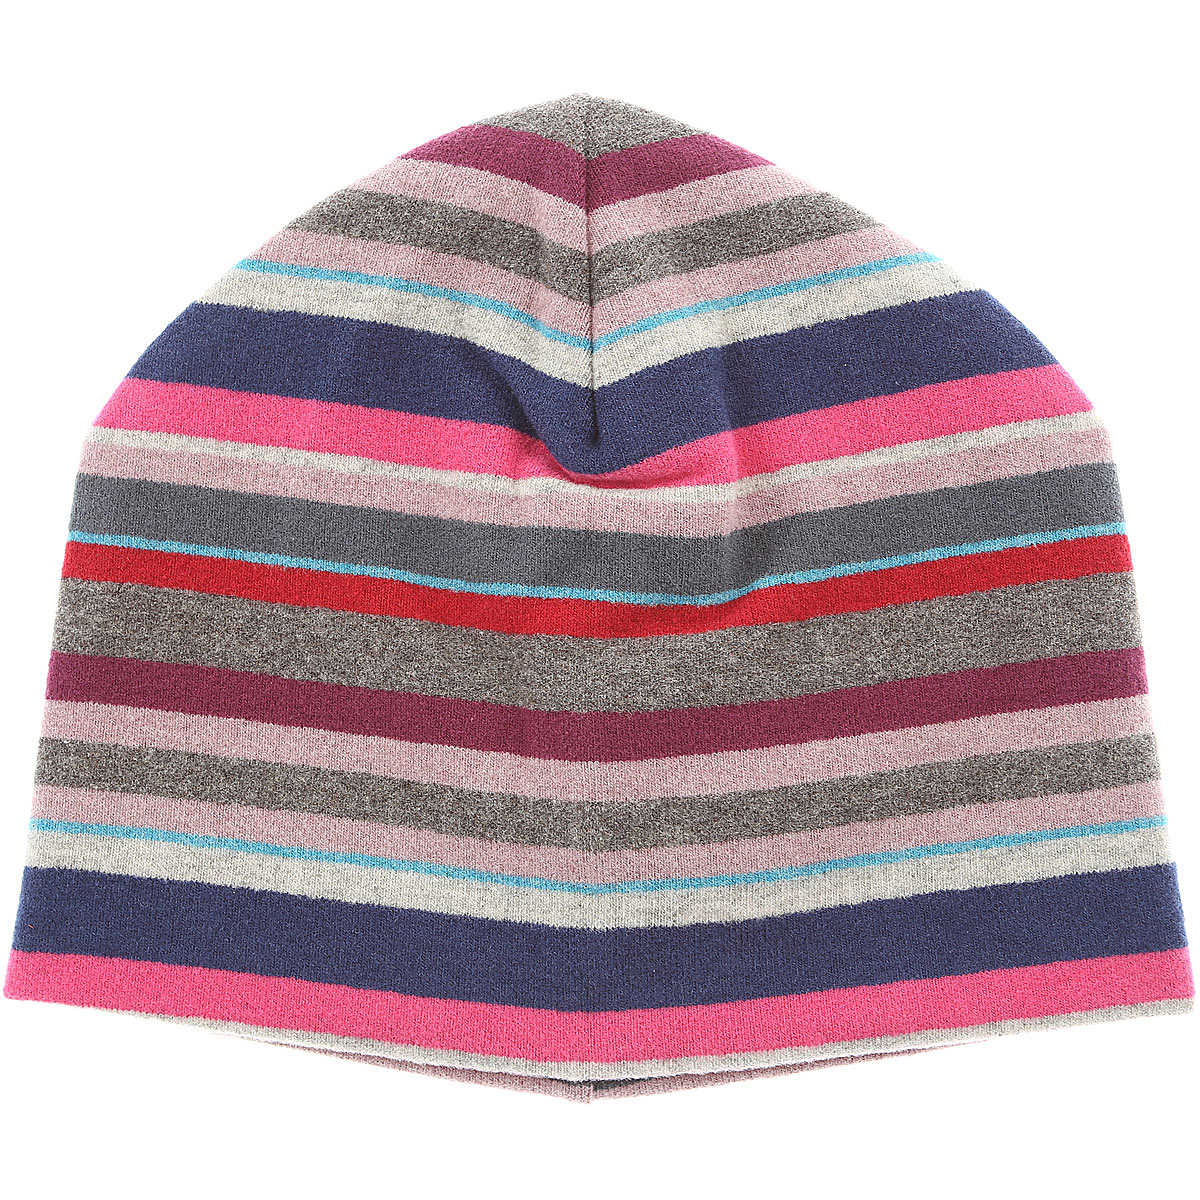 Gallo Kids Hats for Girls On Sale in Outlet Grey - GOOFASH - Womens HATS